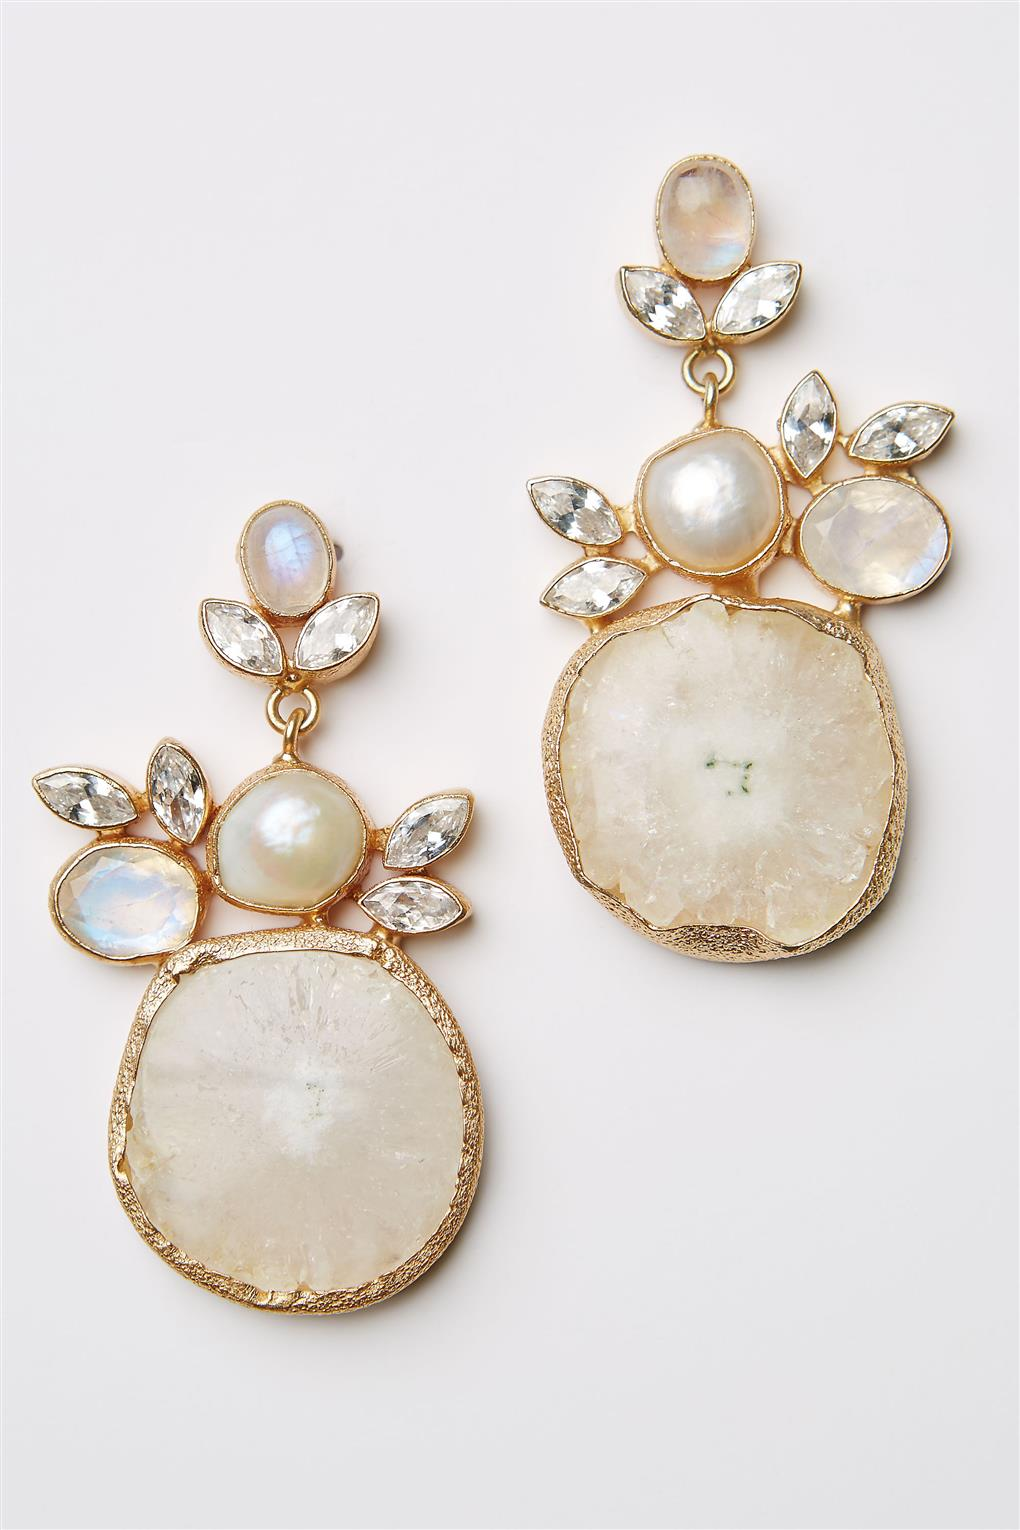 Druzy Drop Earrings from BHLDNs Spring 2015 Collection